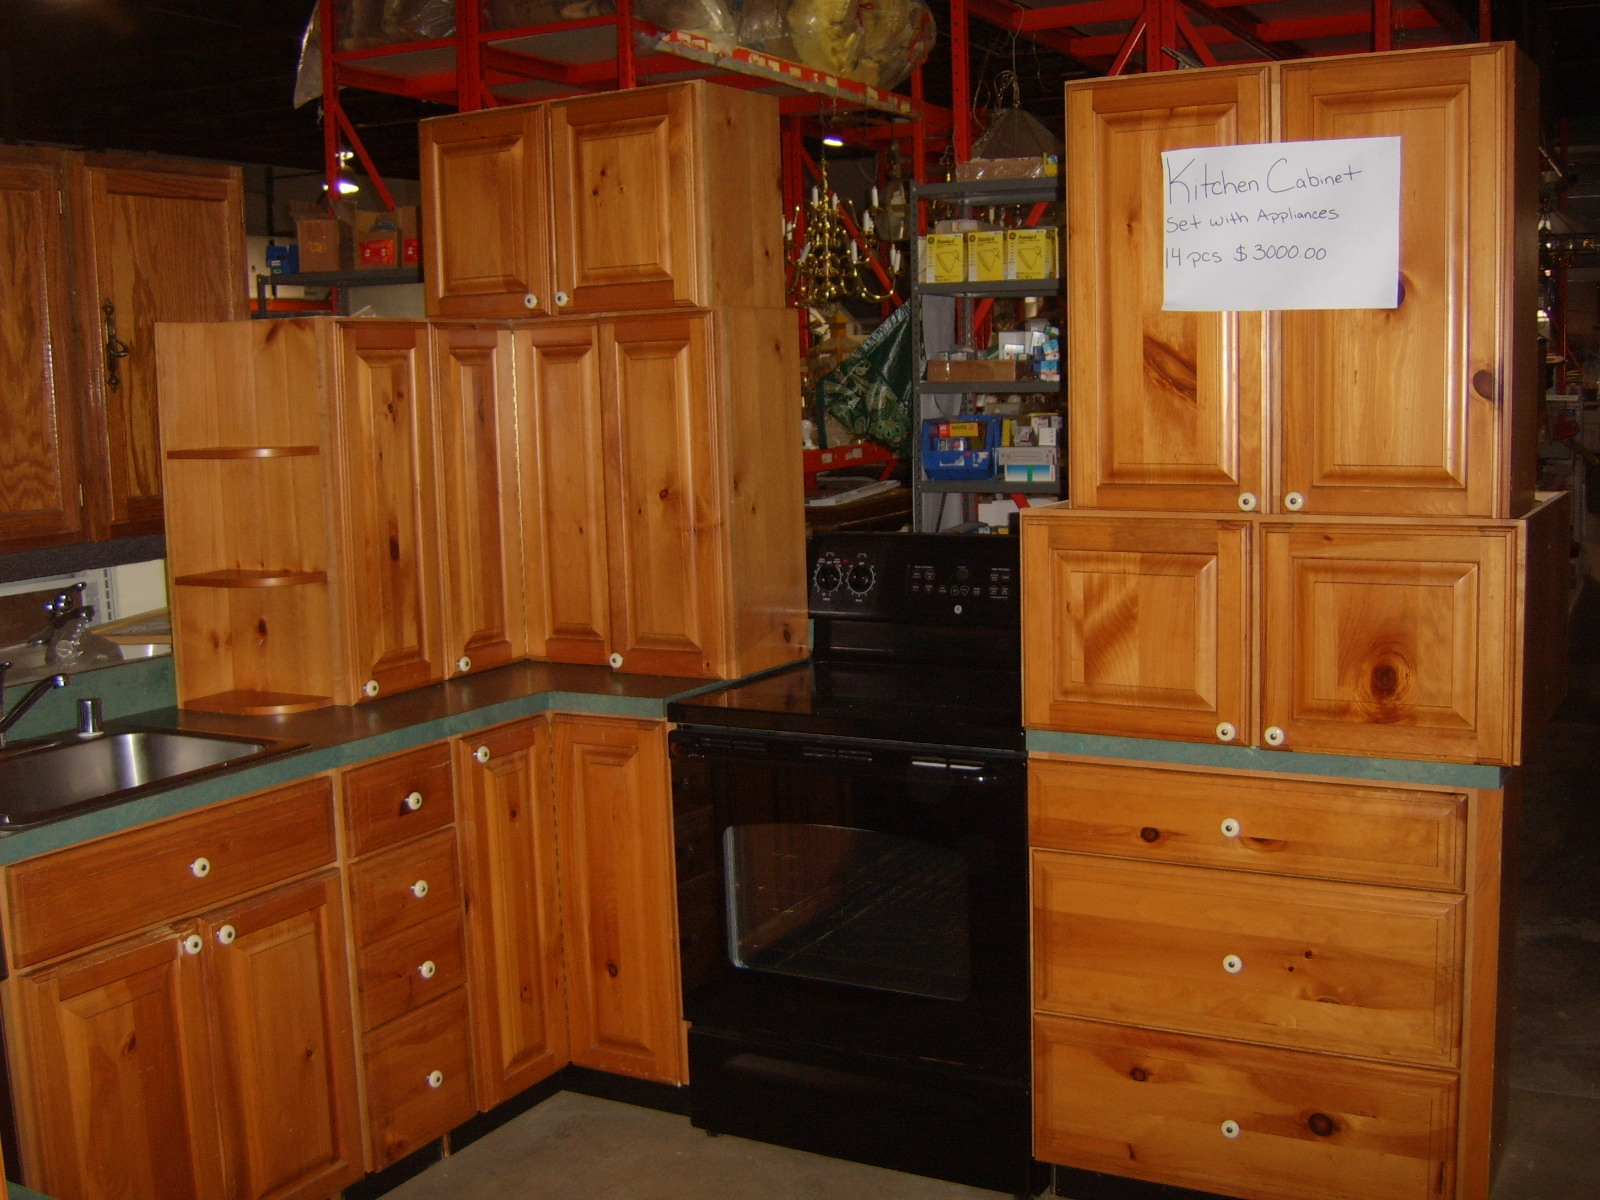 Pine Kitchen Cabinets And Appliances For Sale Re Build 4 November